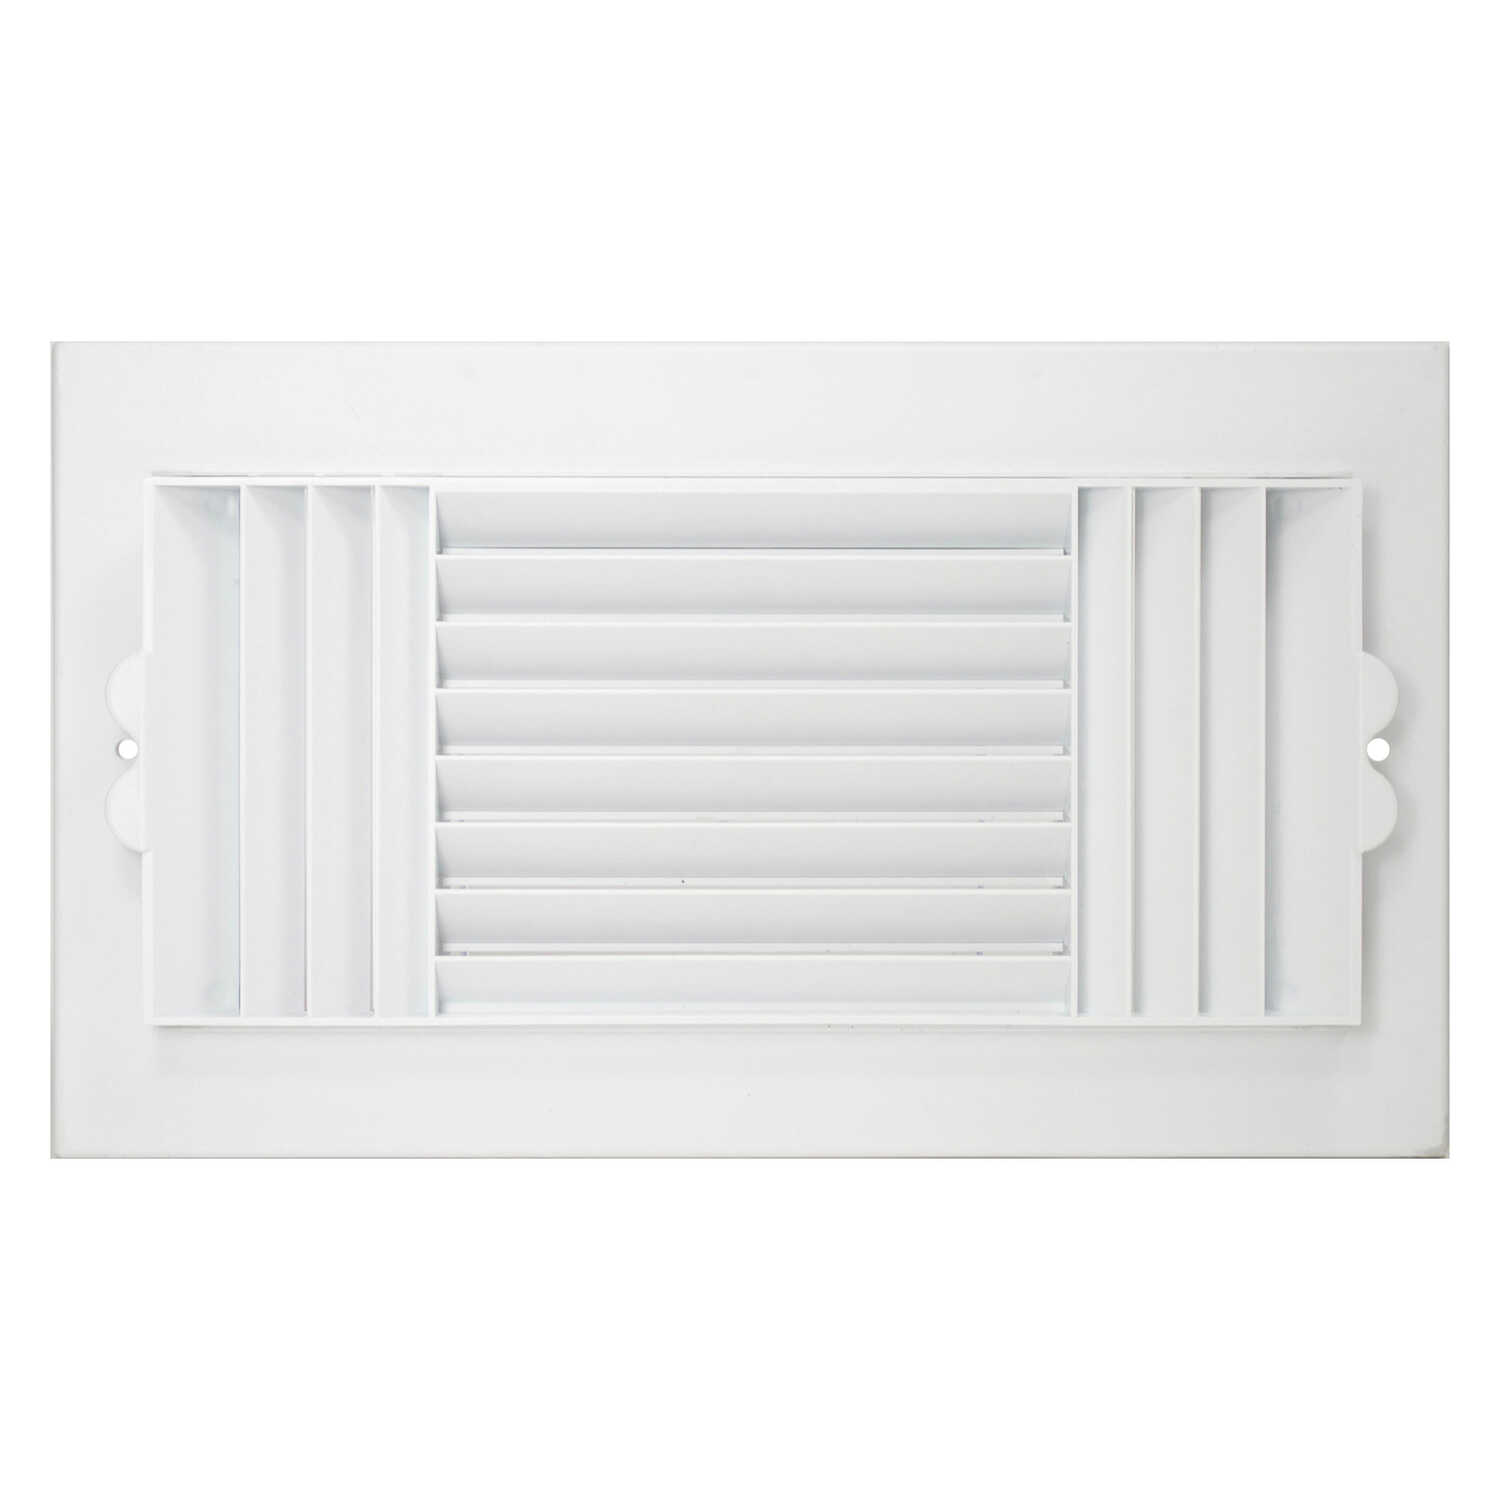 Deflect-O  Jordan  12 in. H x 6 in. W 3-Way  White  Plastic  Ceiling Register